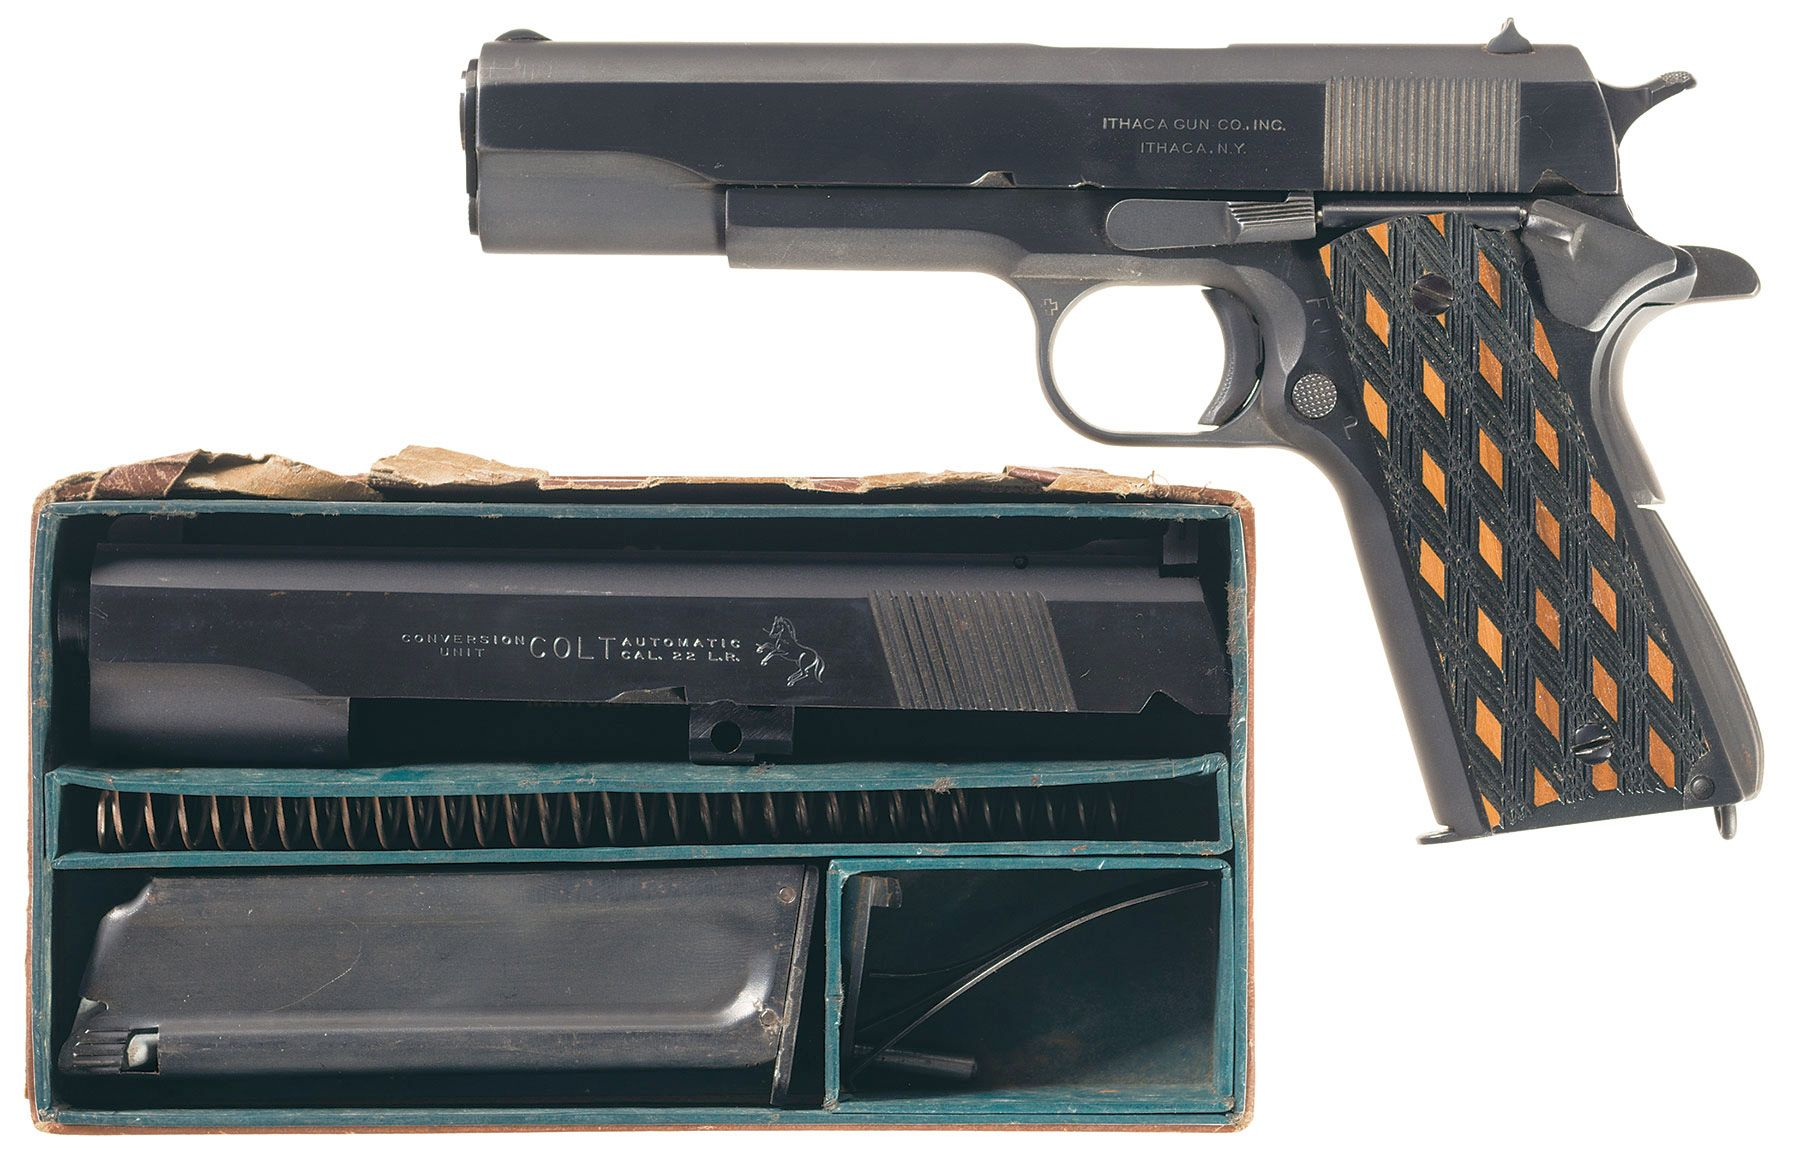 Ithaca 1911a1 Serial Number Lookup